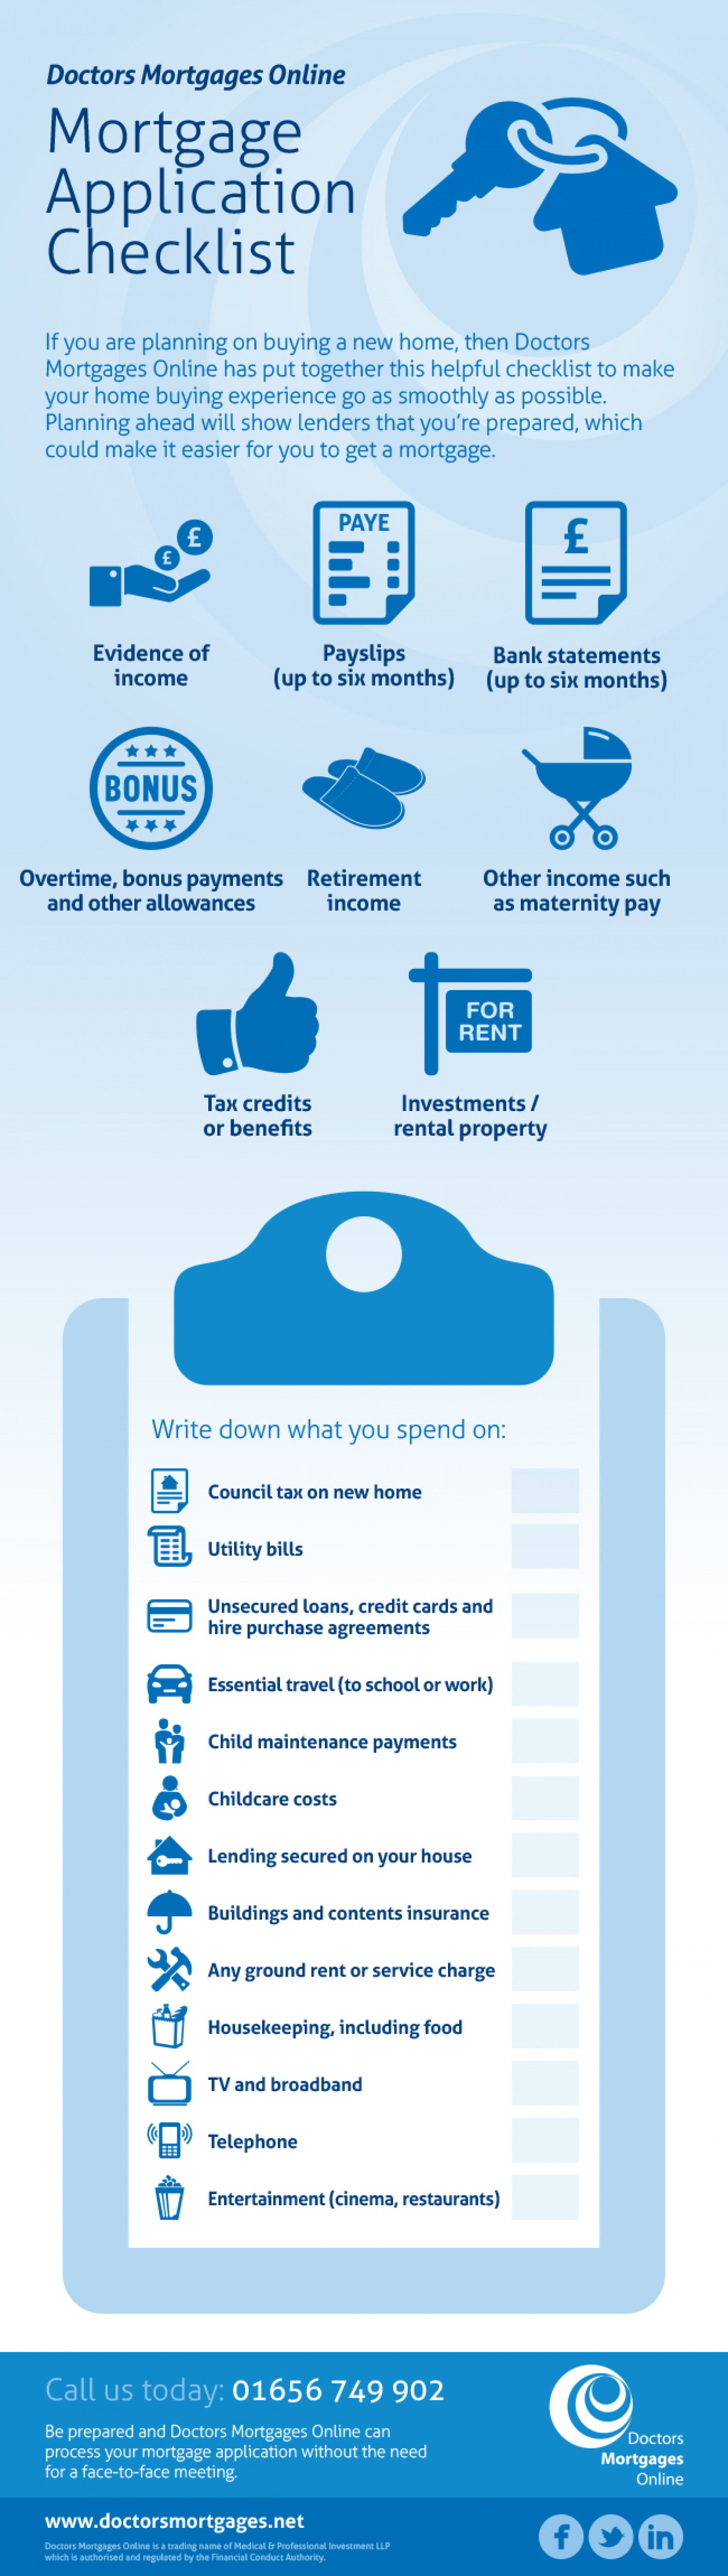 Mortgage Application Checklist Infographic